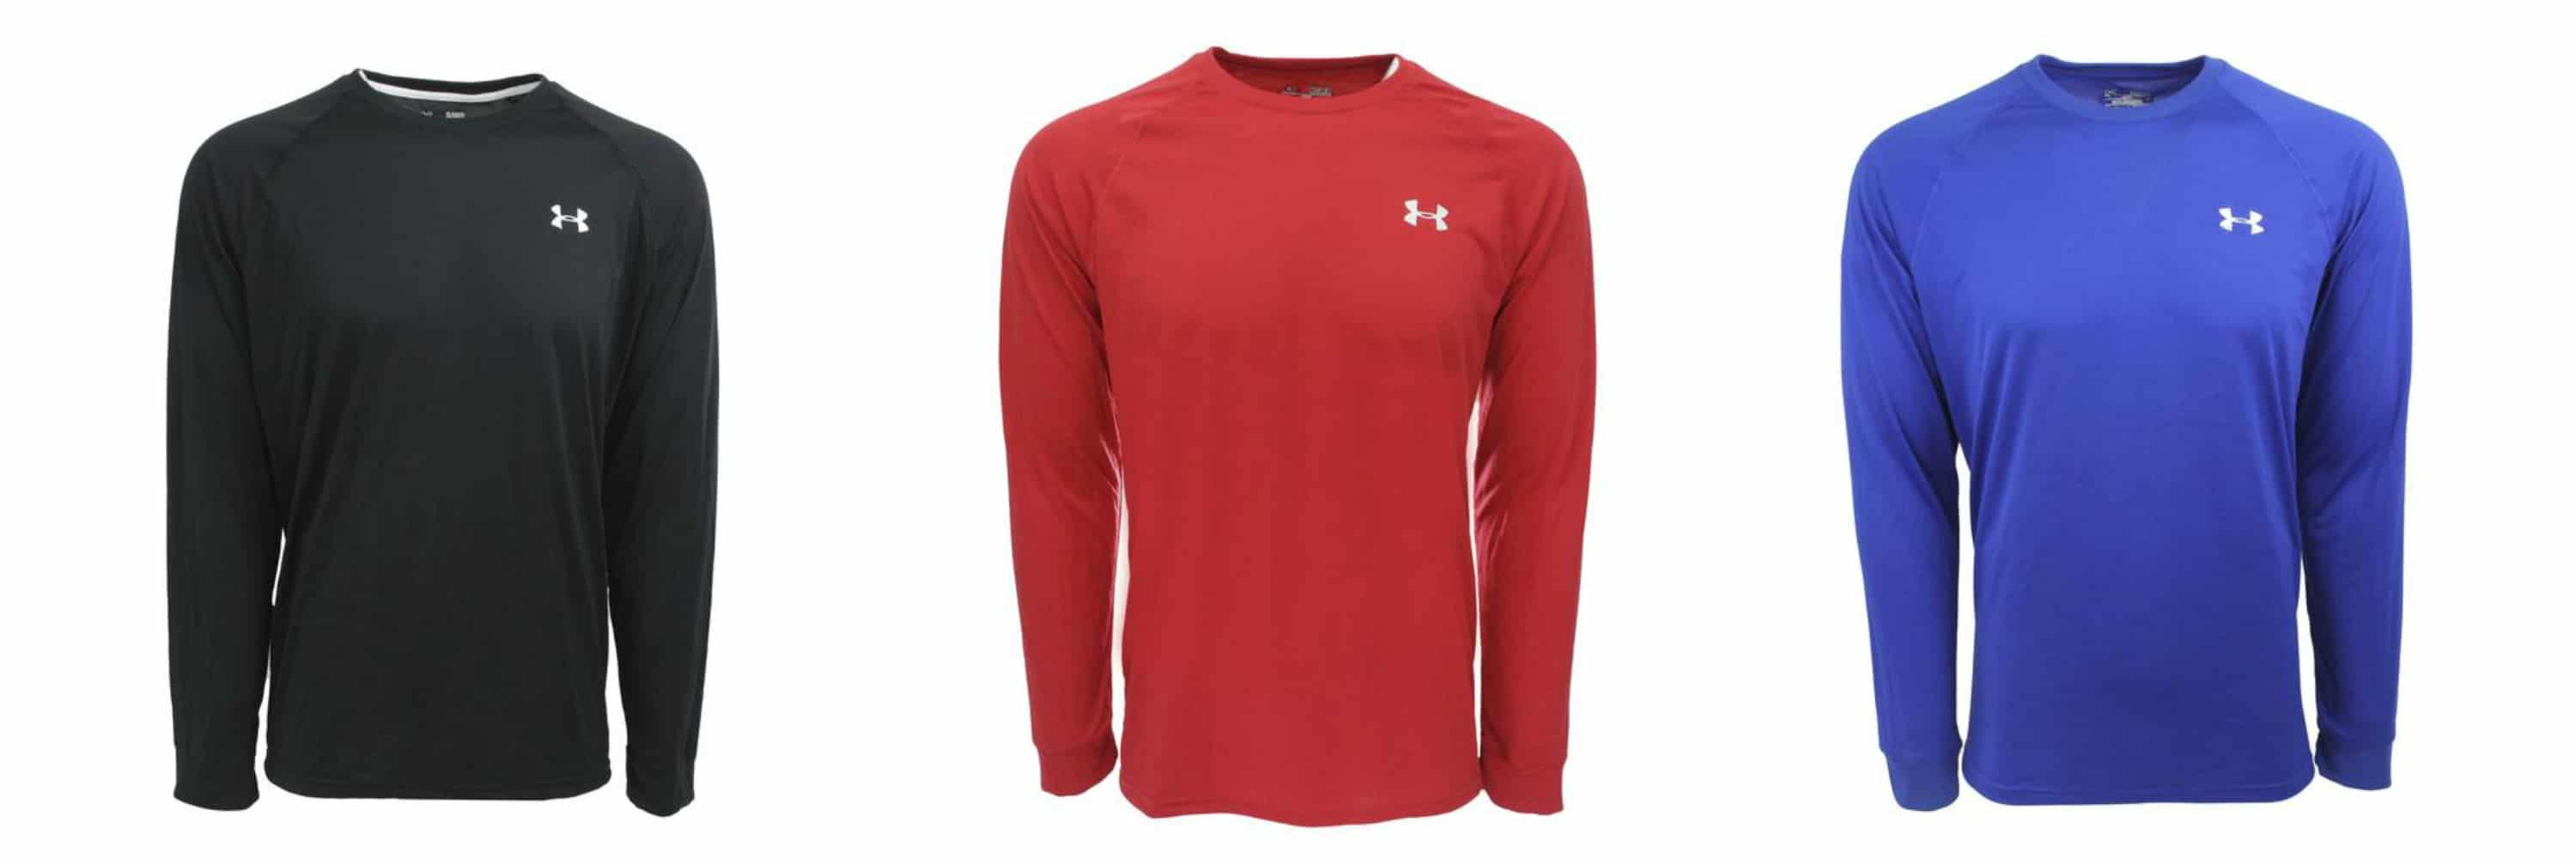 Men 39 s under armour long sleeved tees free shipping for Under armour shirts at walmart